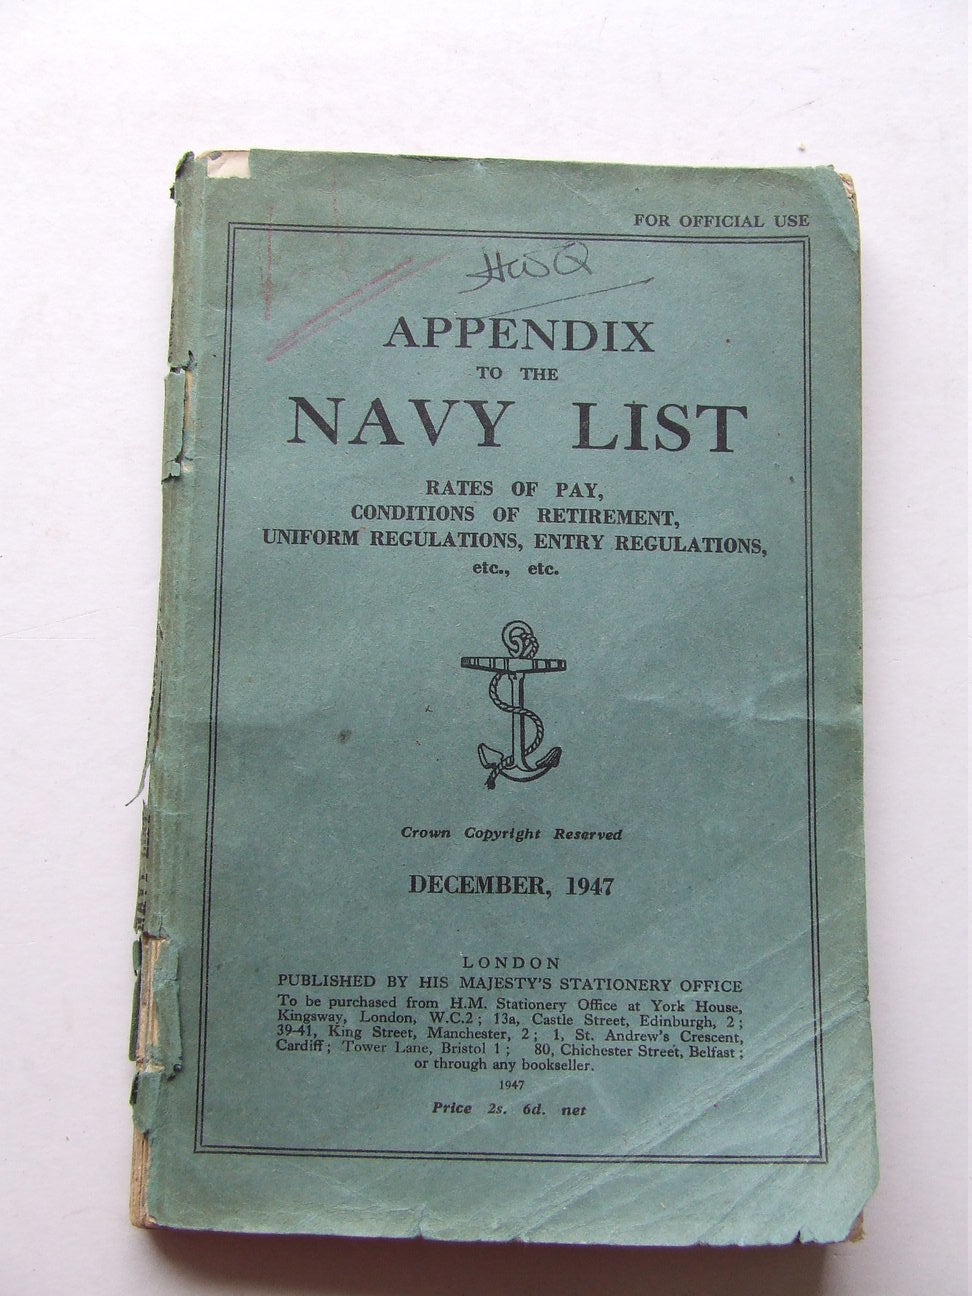 Appendix to the Navy List, December 1947